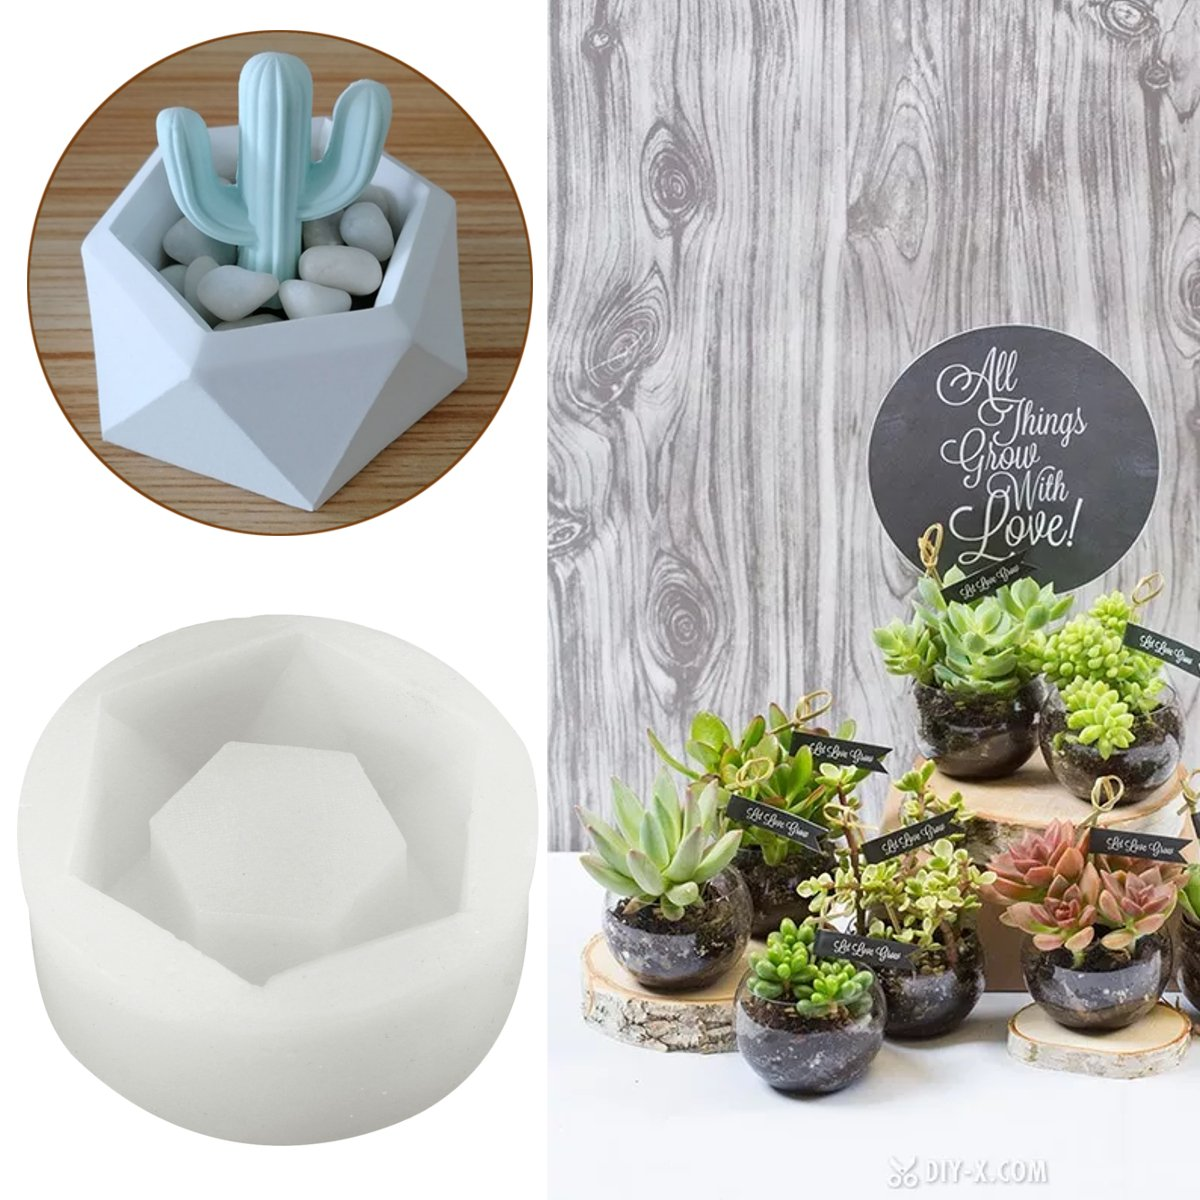 Jeteven Flower Pot Silicone Rubber Molds Candle Soap Bottle Mold Handmade Craft Mold DIY Garden Planter Vase Ashtray Mould Tool 8.5 x 8.5 x 3.8cm Round Diamond